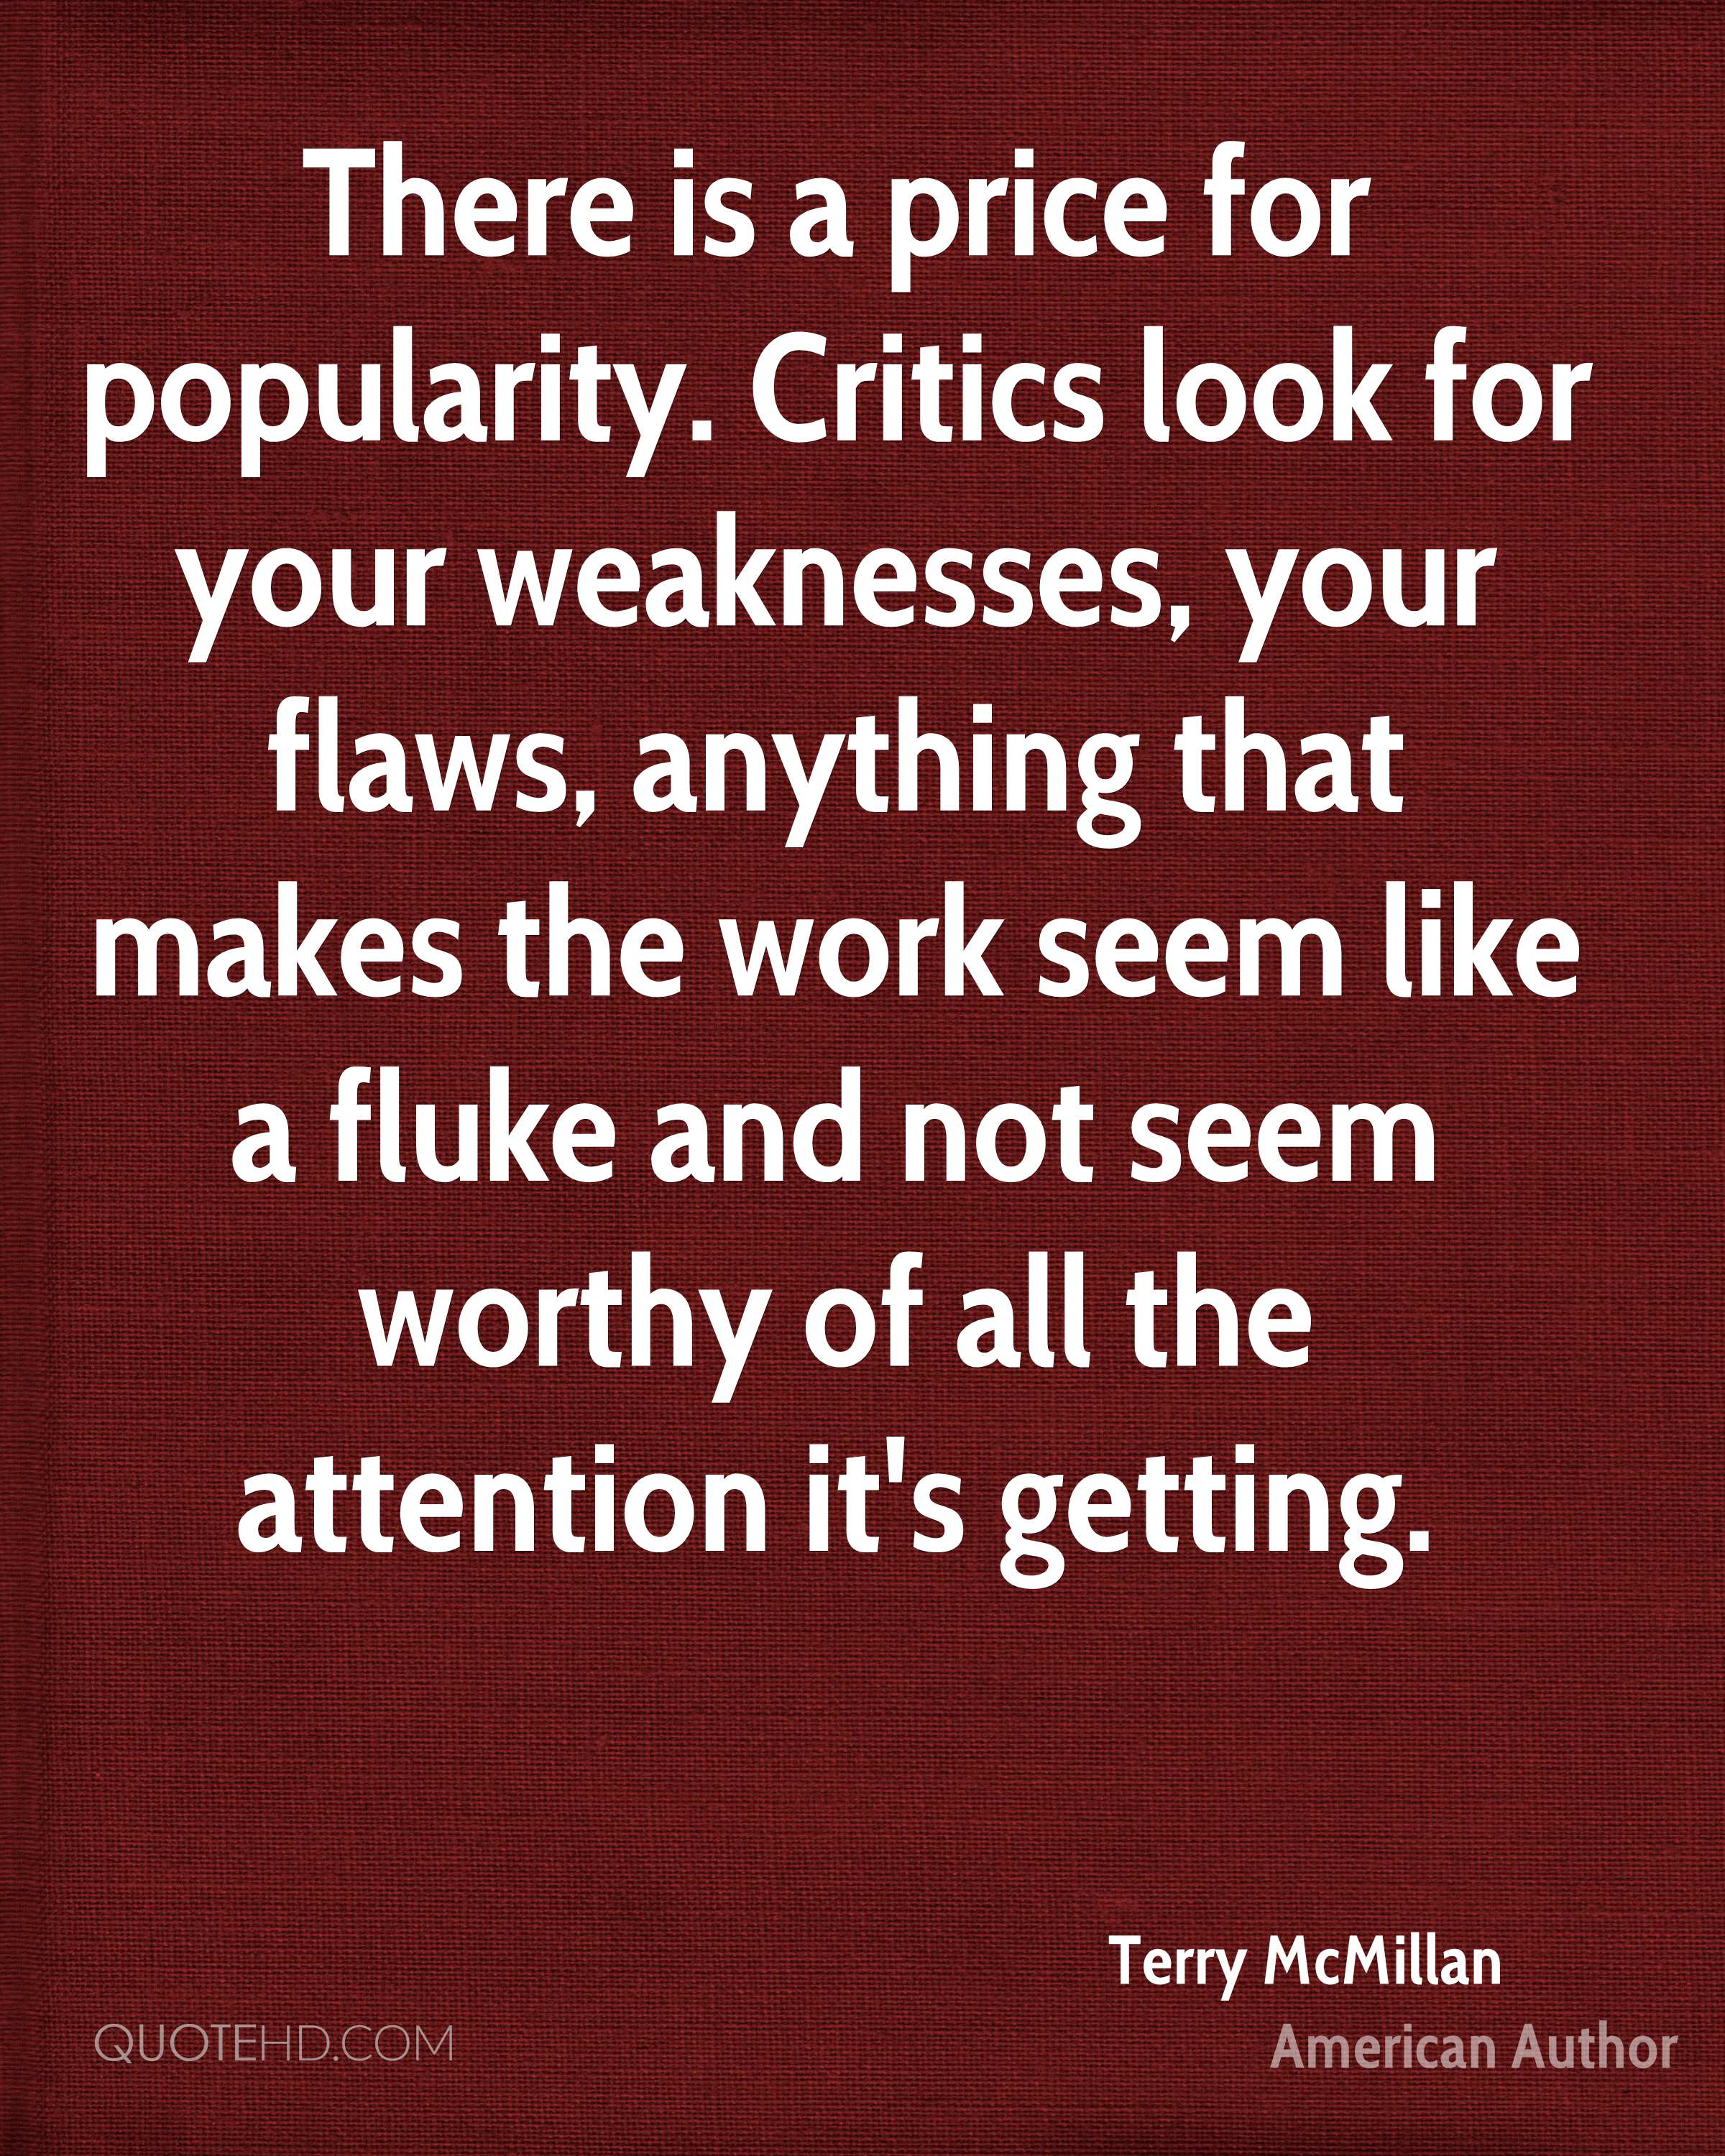 There is a price for popularity. Critics look for your weaknesses, your flaws, anything that makes the work seem like a fluke and not seem worthy of all the attention it's getting.